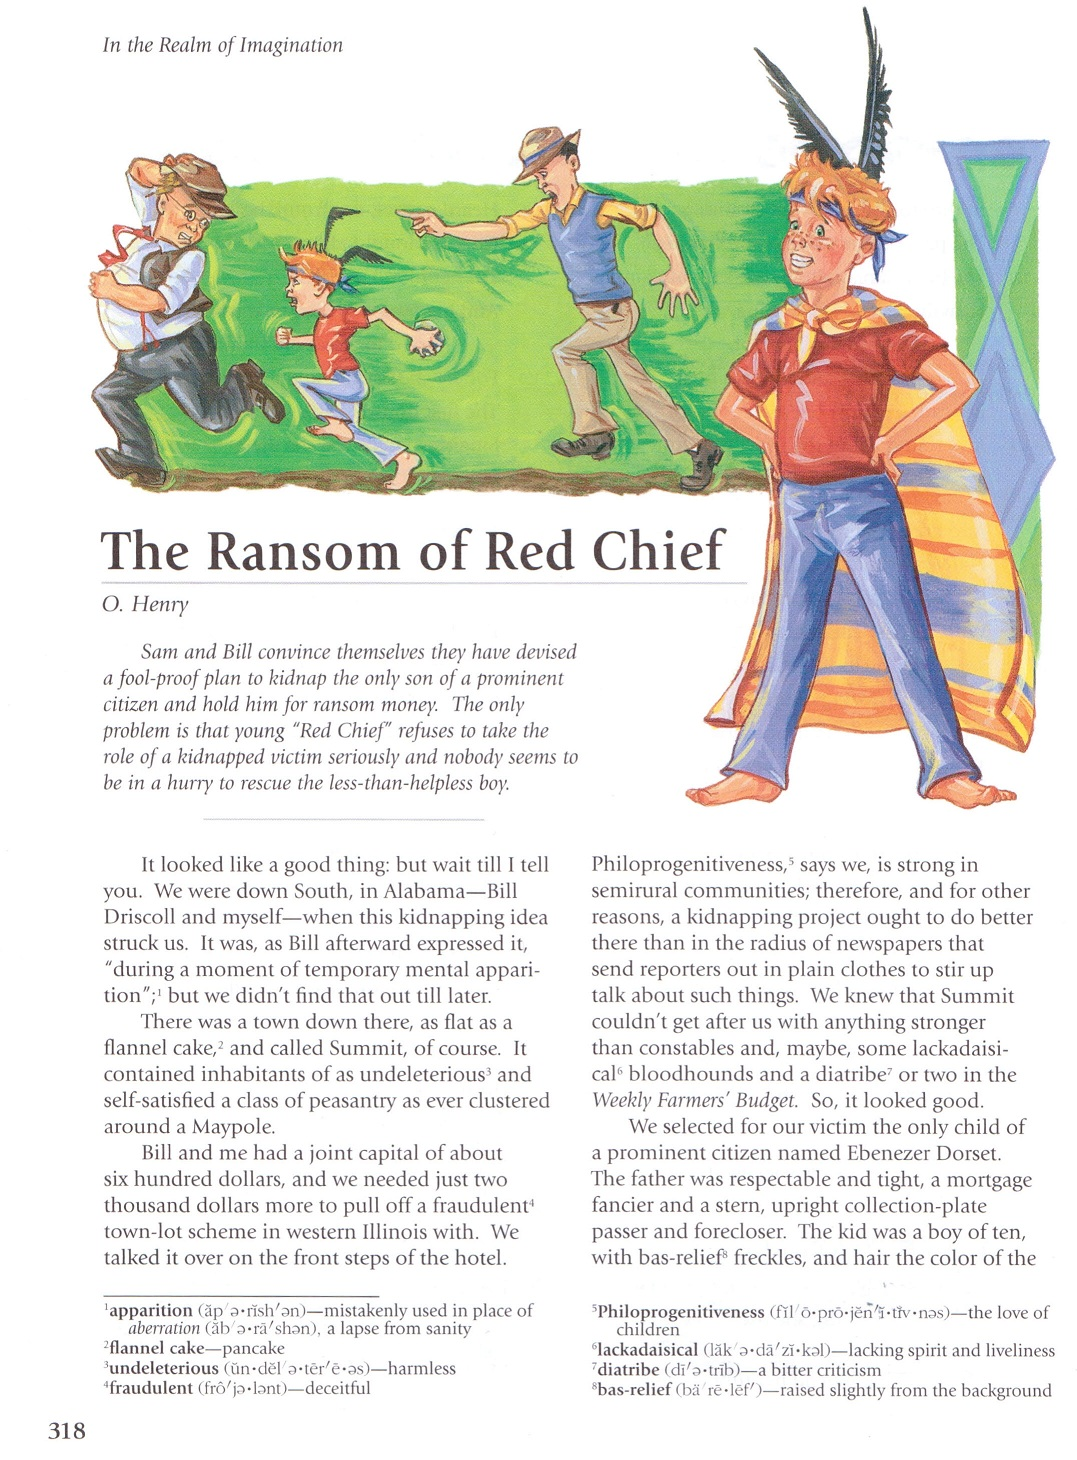 summary about the ransom of red Summary two small-time criminals, bill and sam, kidnap johnny, the 10-year-old red-haired son of an important citizen named ebenezer dorset, and hold him for ransom.